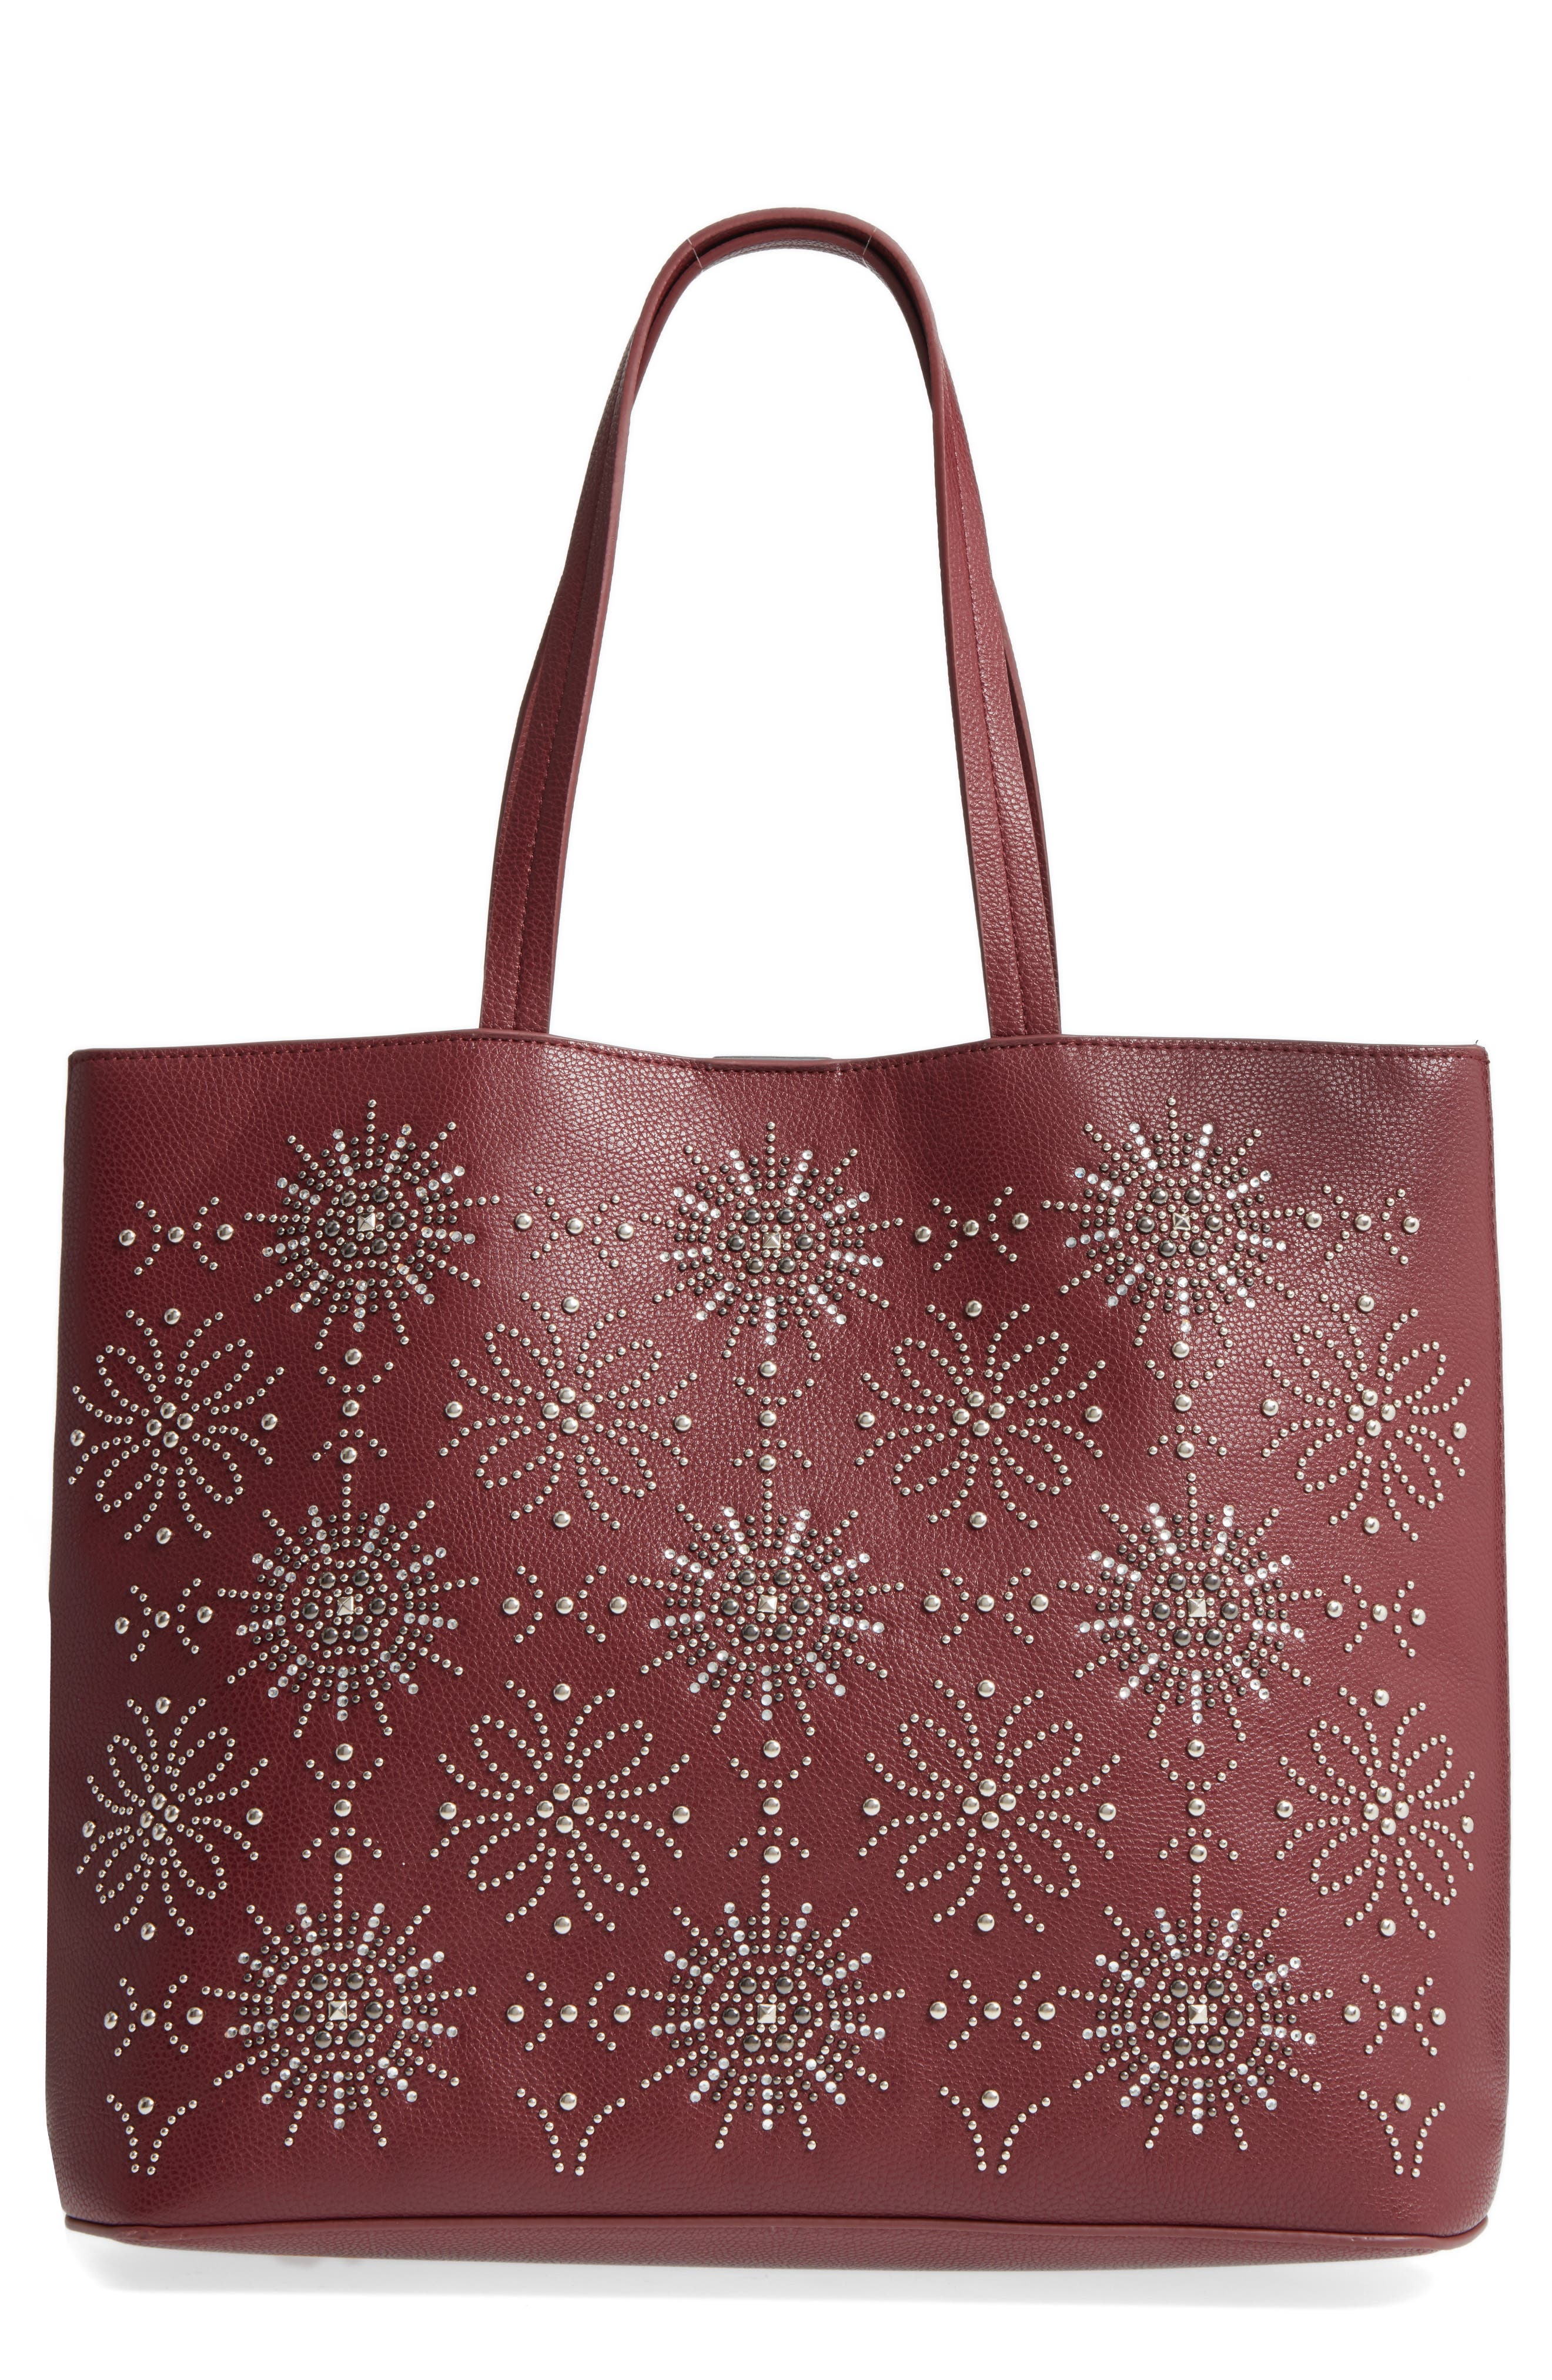 Main Image - Chelsea28 Starburst Faux Leather Tote & Zip Pouch